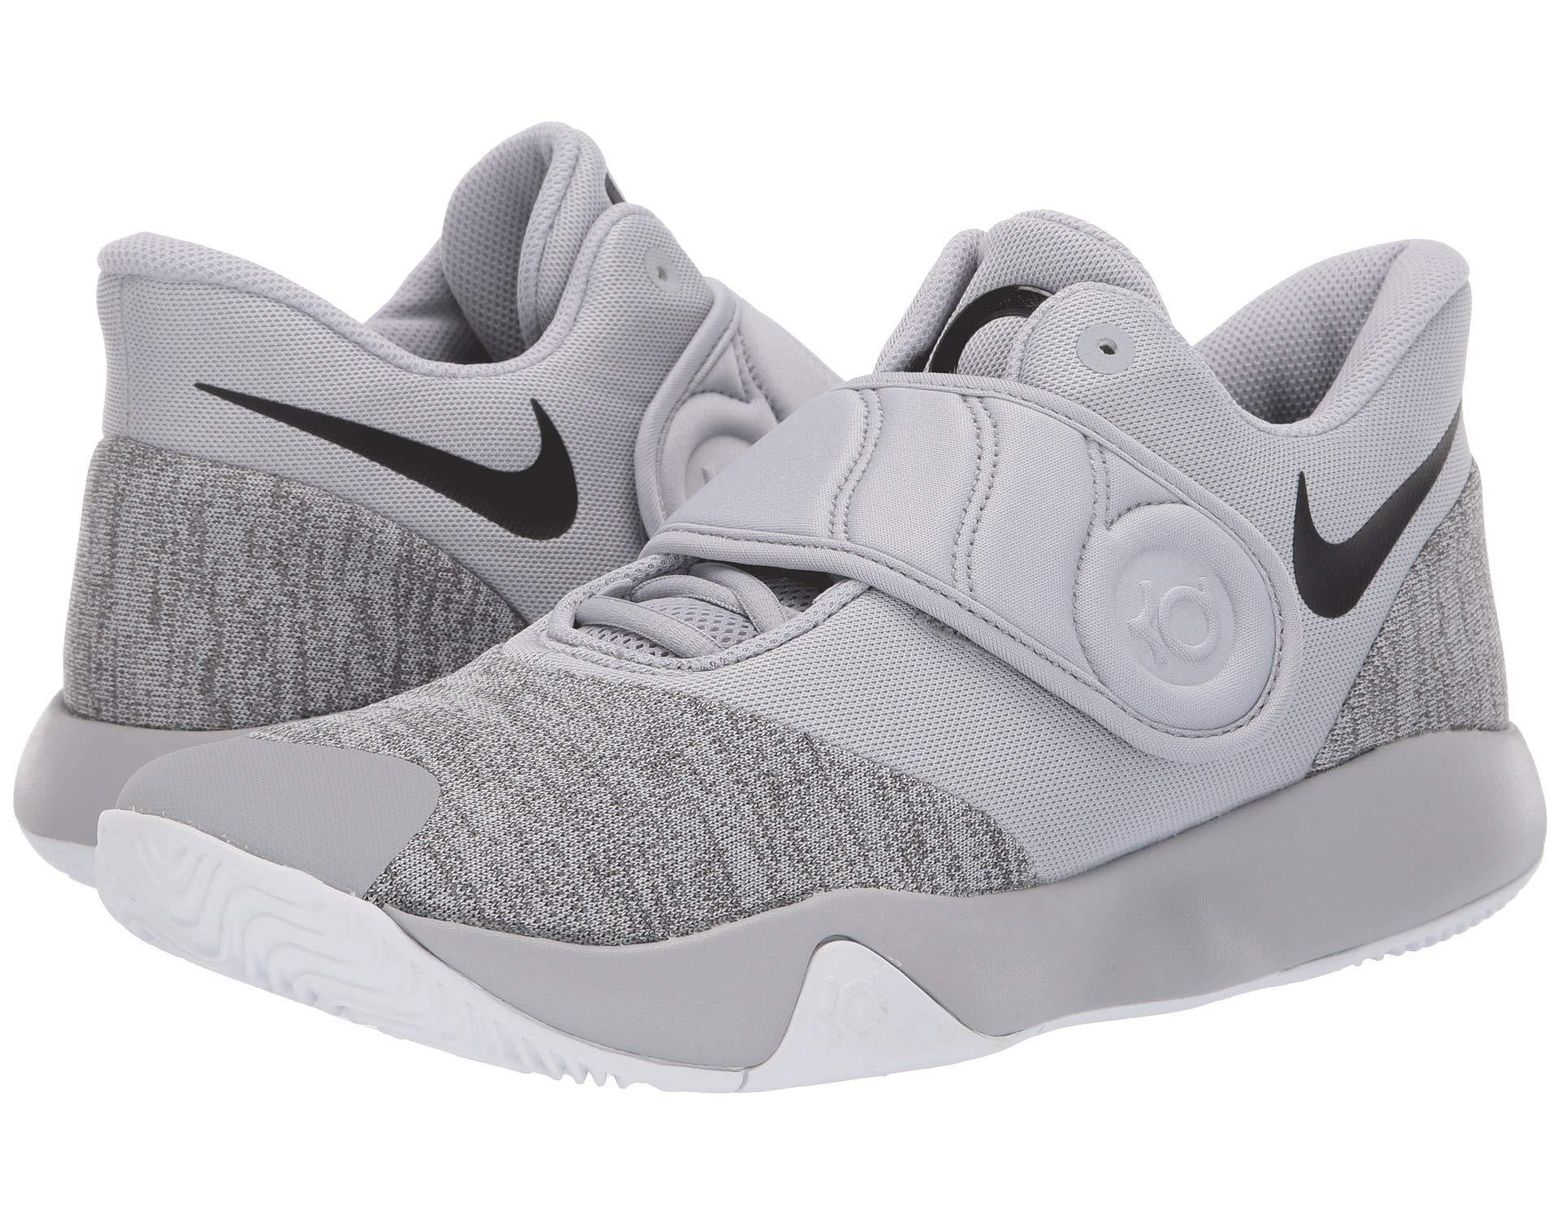 official photos 91925 fe0dc Nike Kd Trey 5 Vi in Gray for Men - Save 7% - Lyst